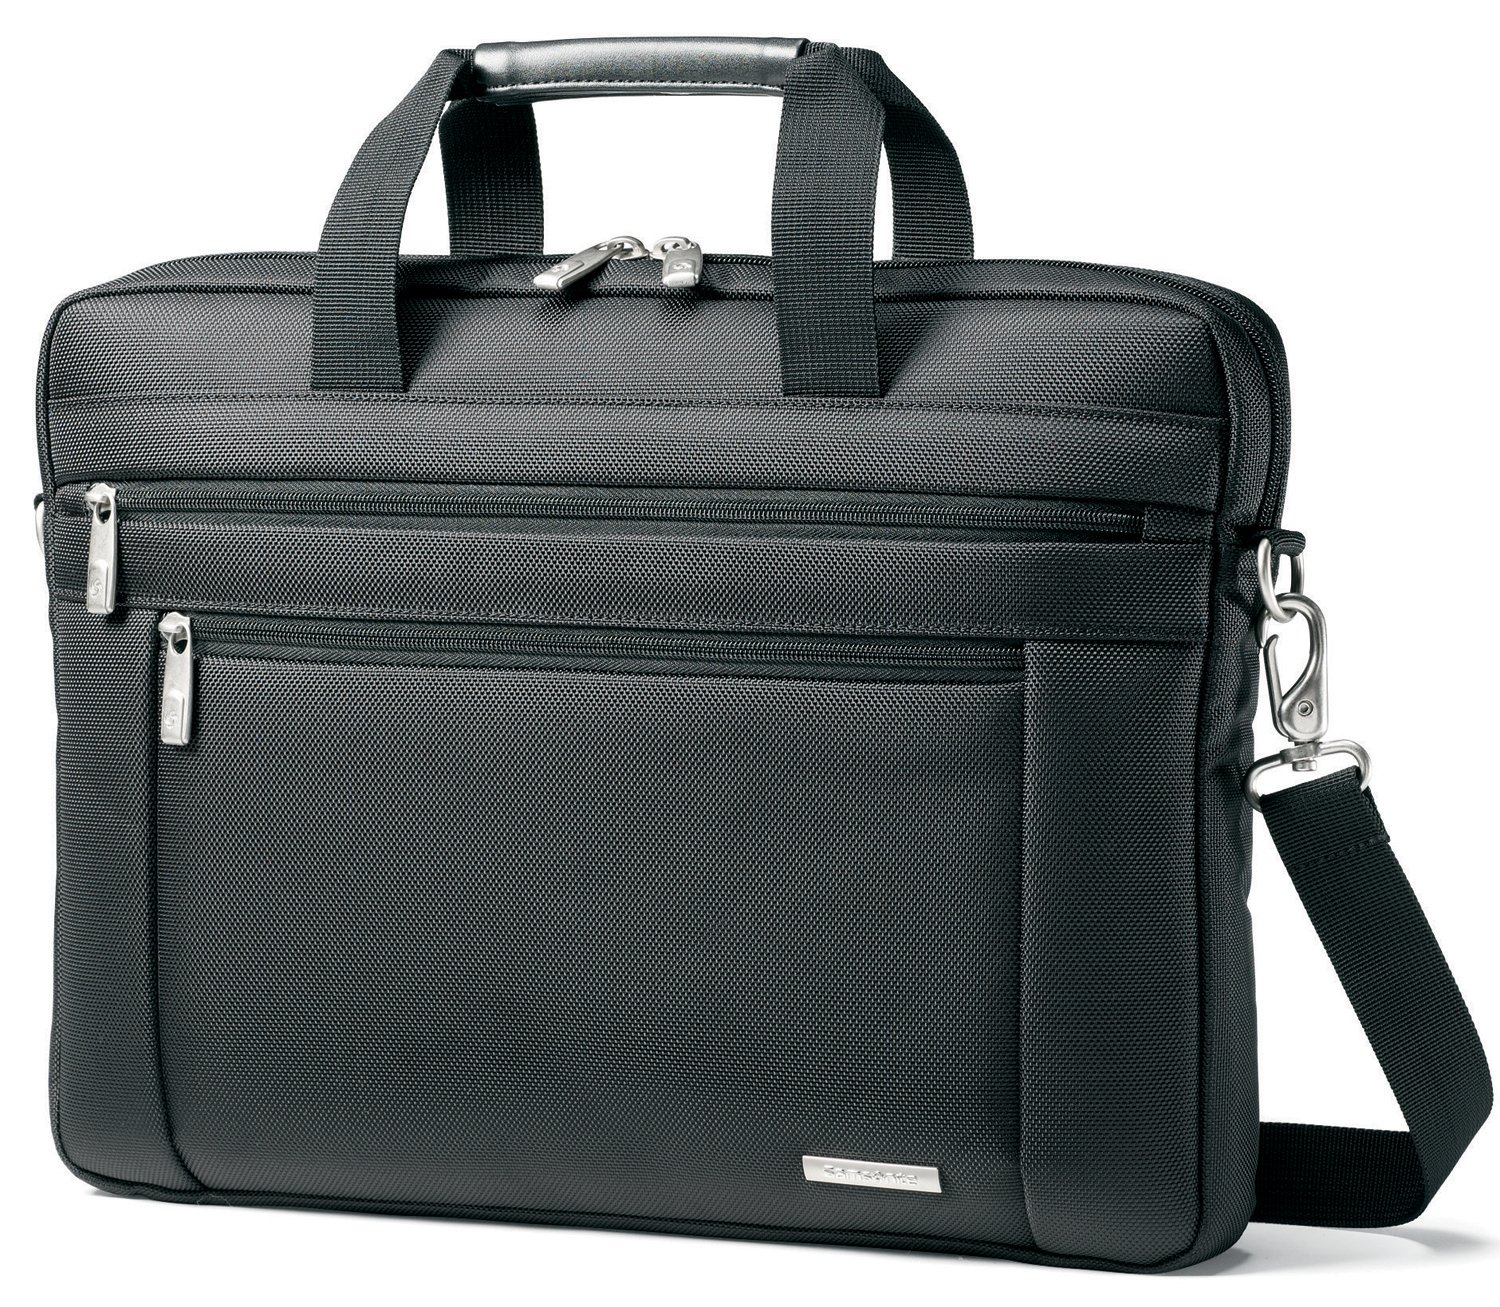 SML432711041 - Samsonite Cosco Samsonite Classic Carrying Case for 15.6quot; Notebook - Black by Samsonite (Image #1)